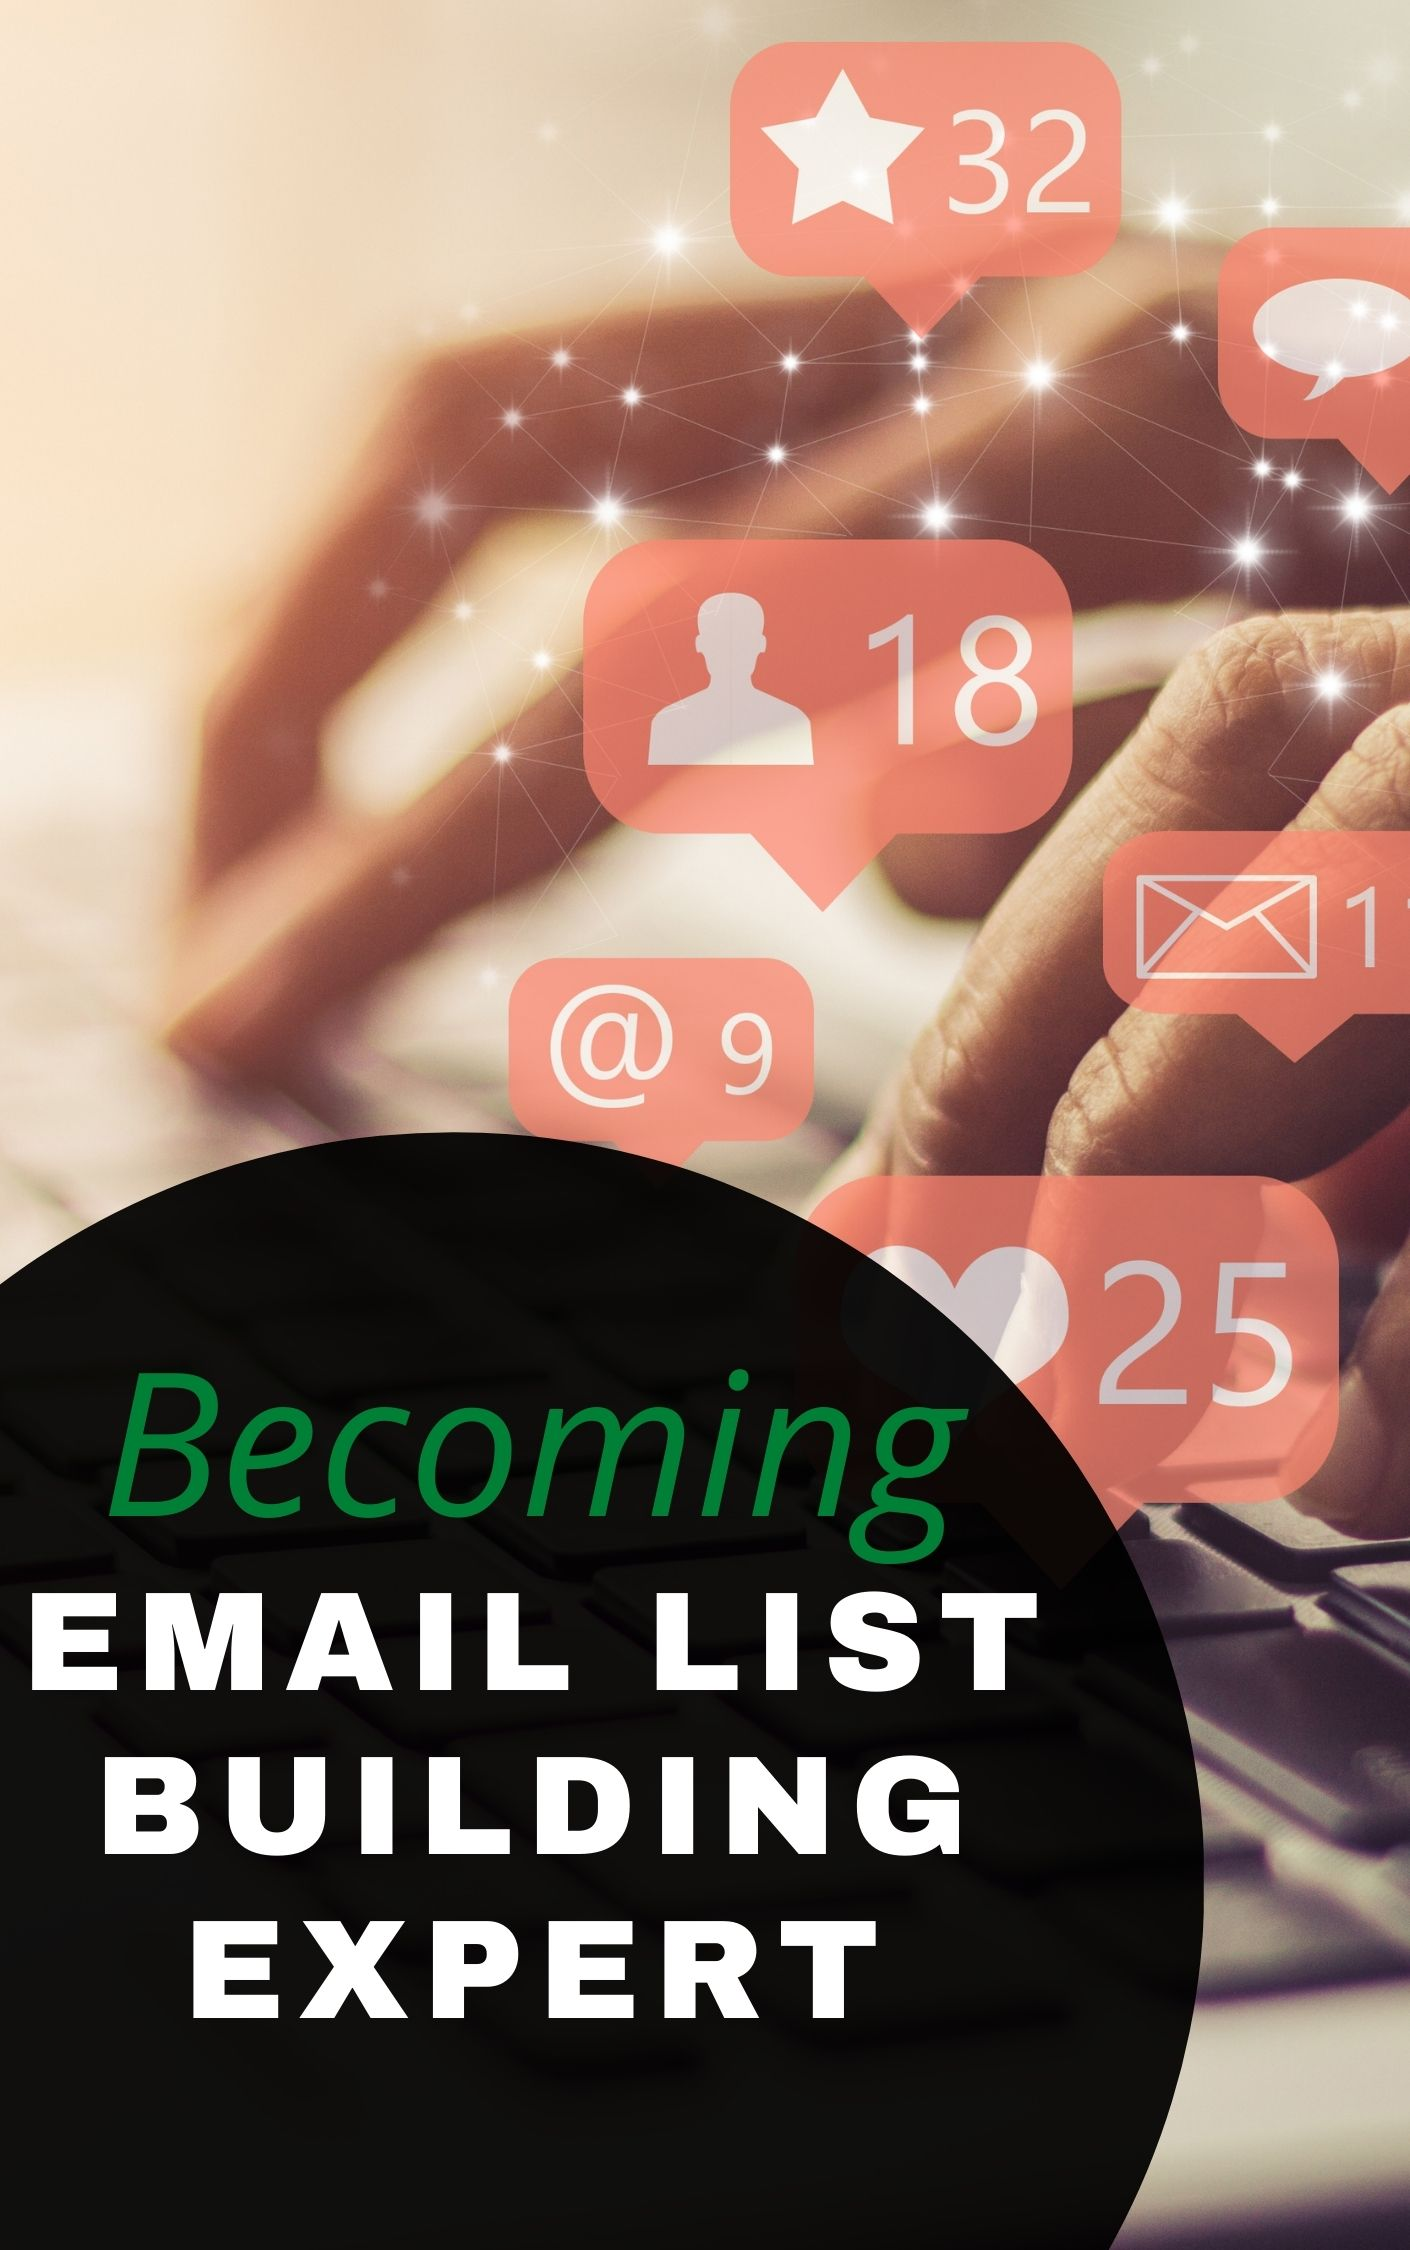 Becoming an email list building expert